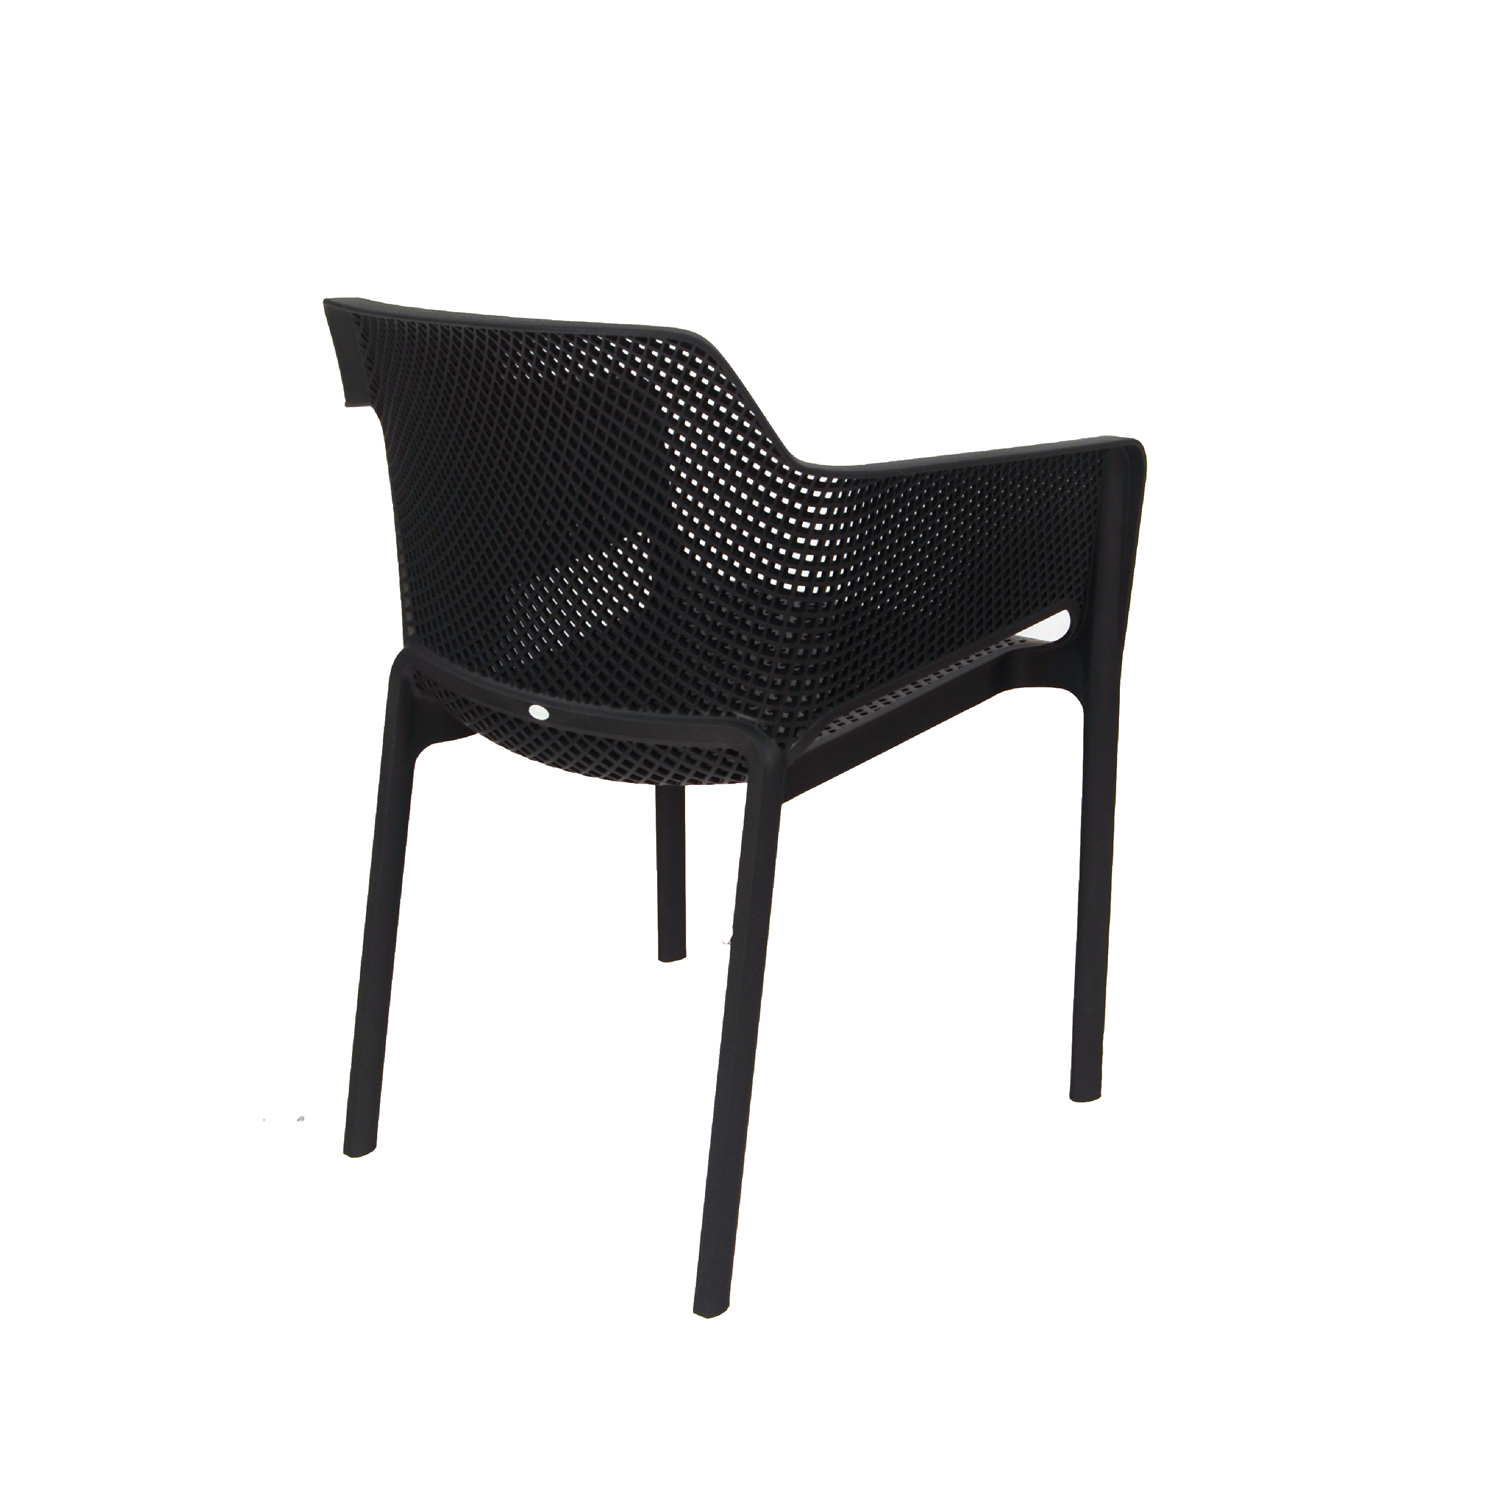 NET CHAIR ANTHRACITE PROFILE WS3